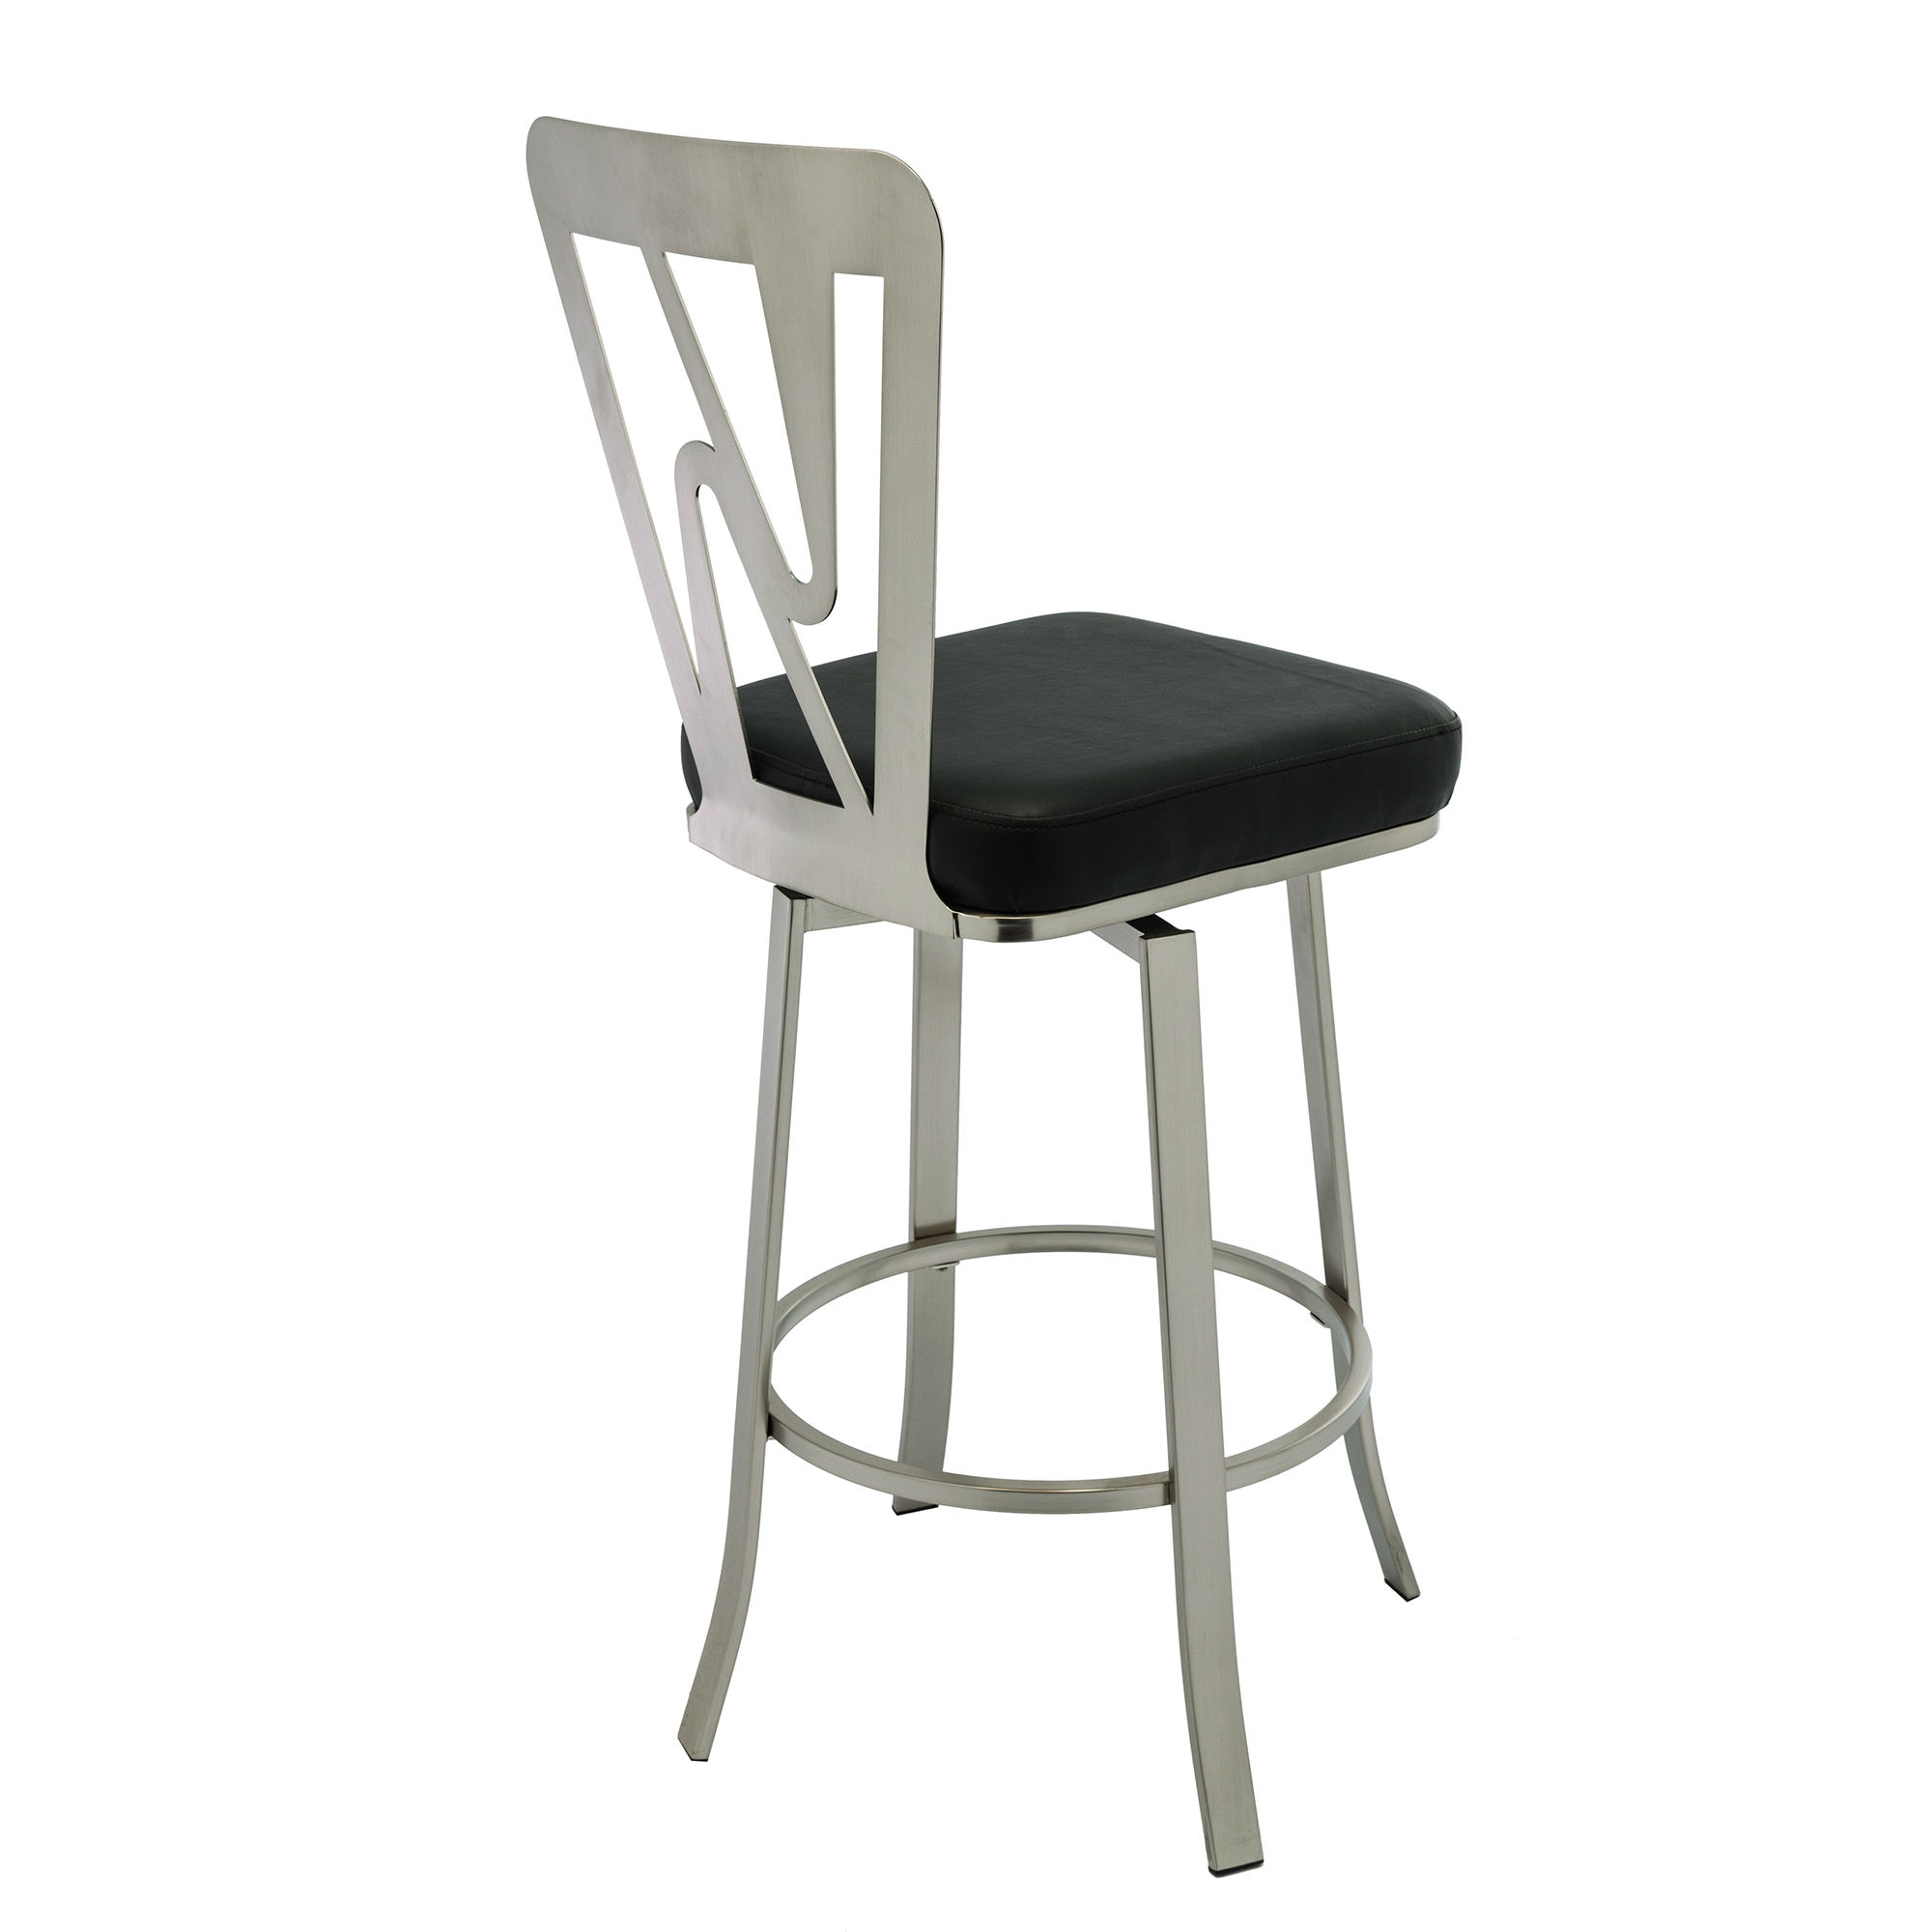 Modern Industrial Furniture Velvet Upholstered Silver Metal Frame High Bar Stools Chairs With Back Rest